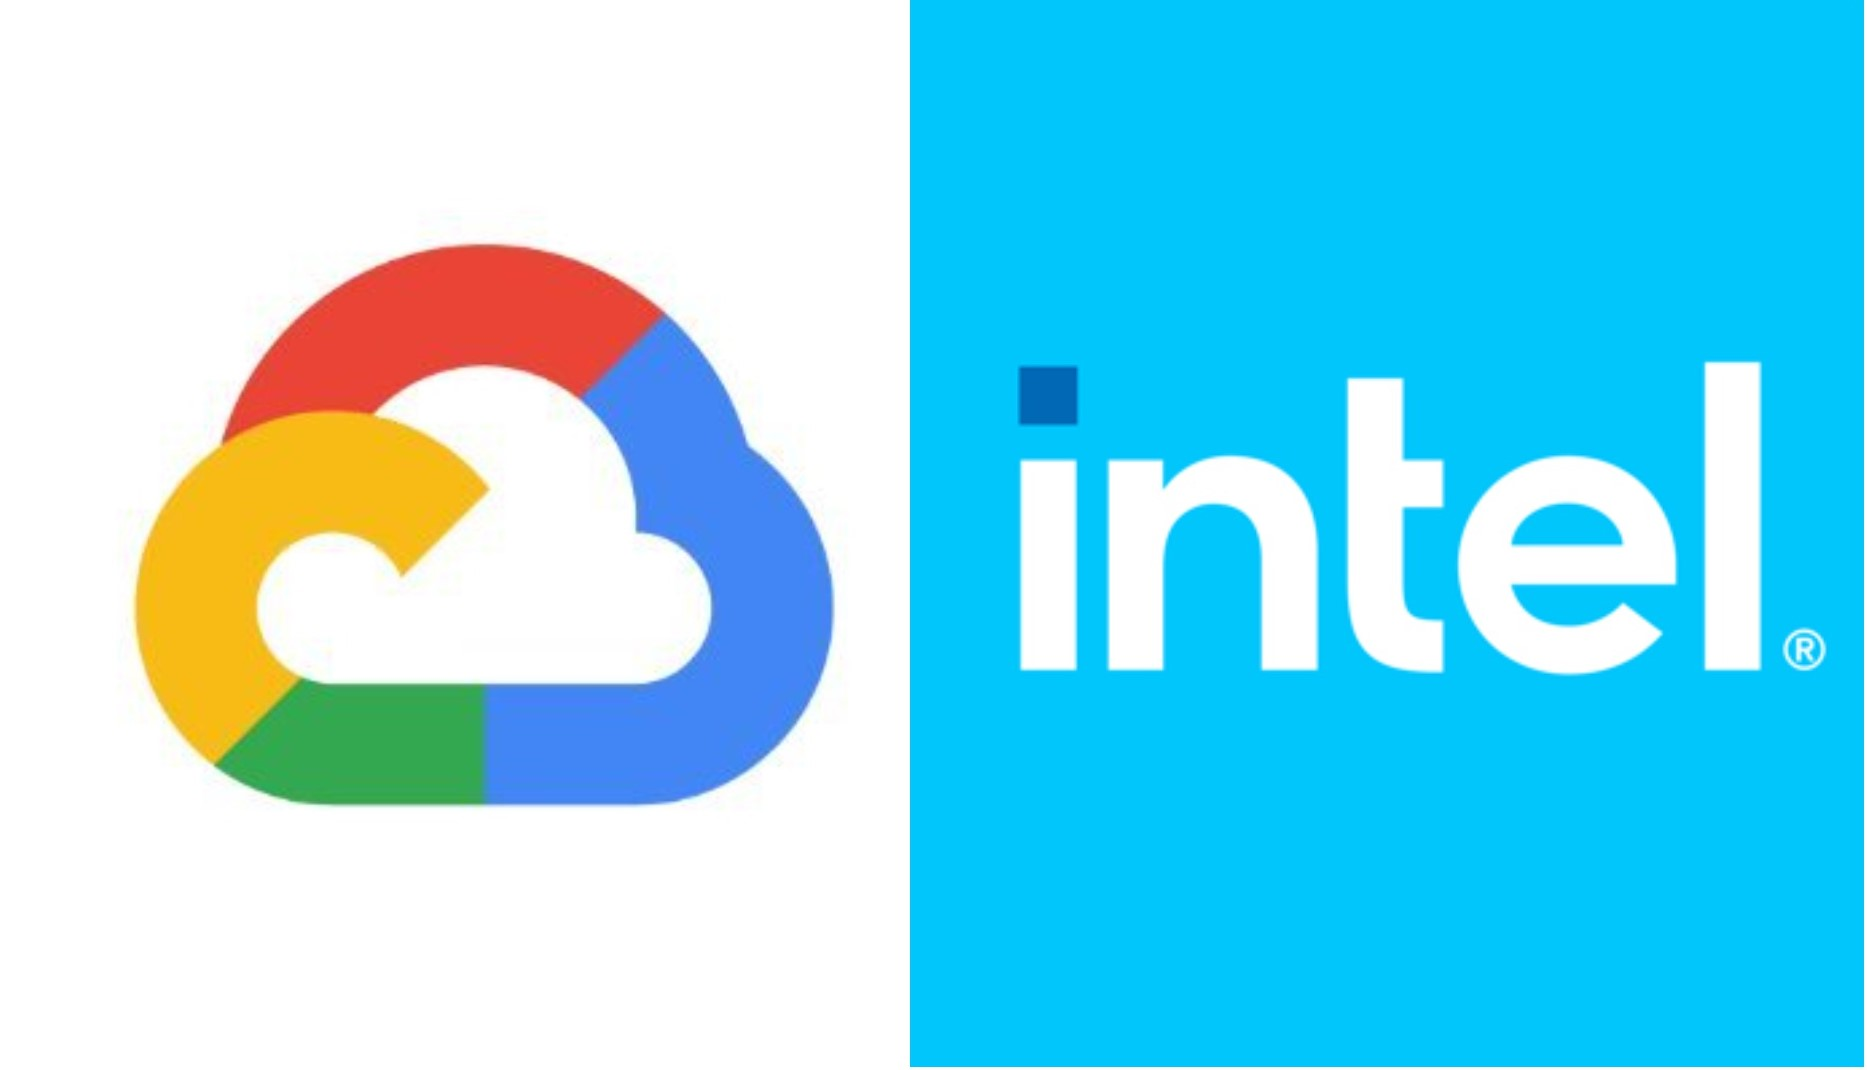 Google Cloud, Intel partner to help CSPs accelerate 5G deployment